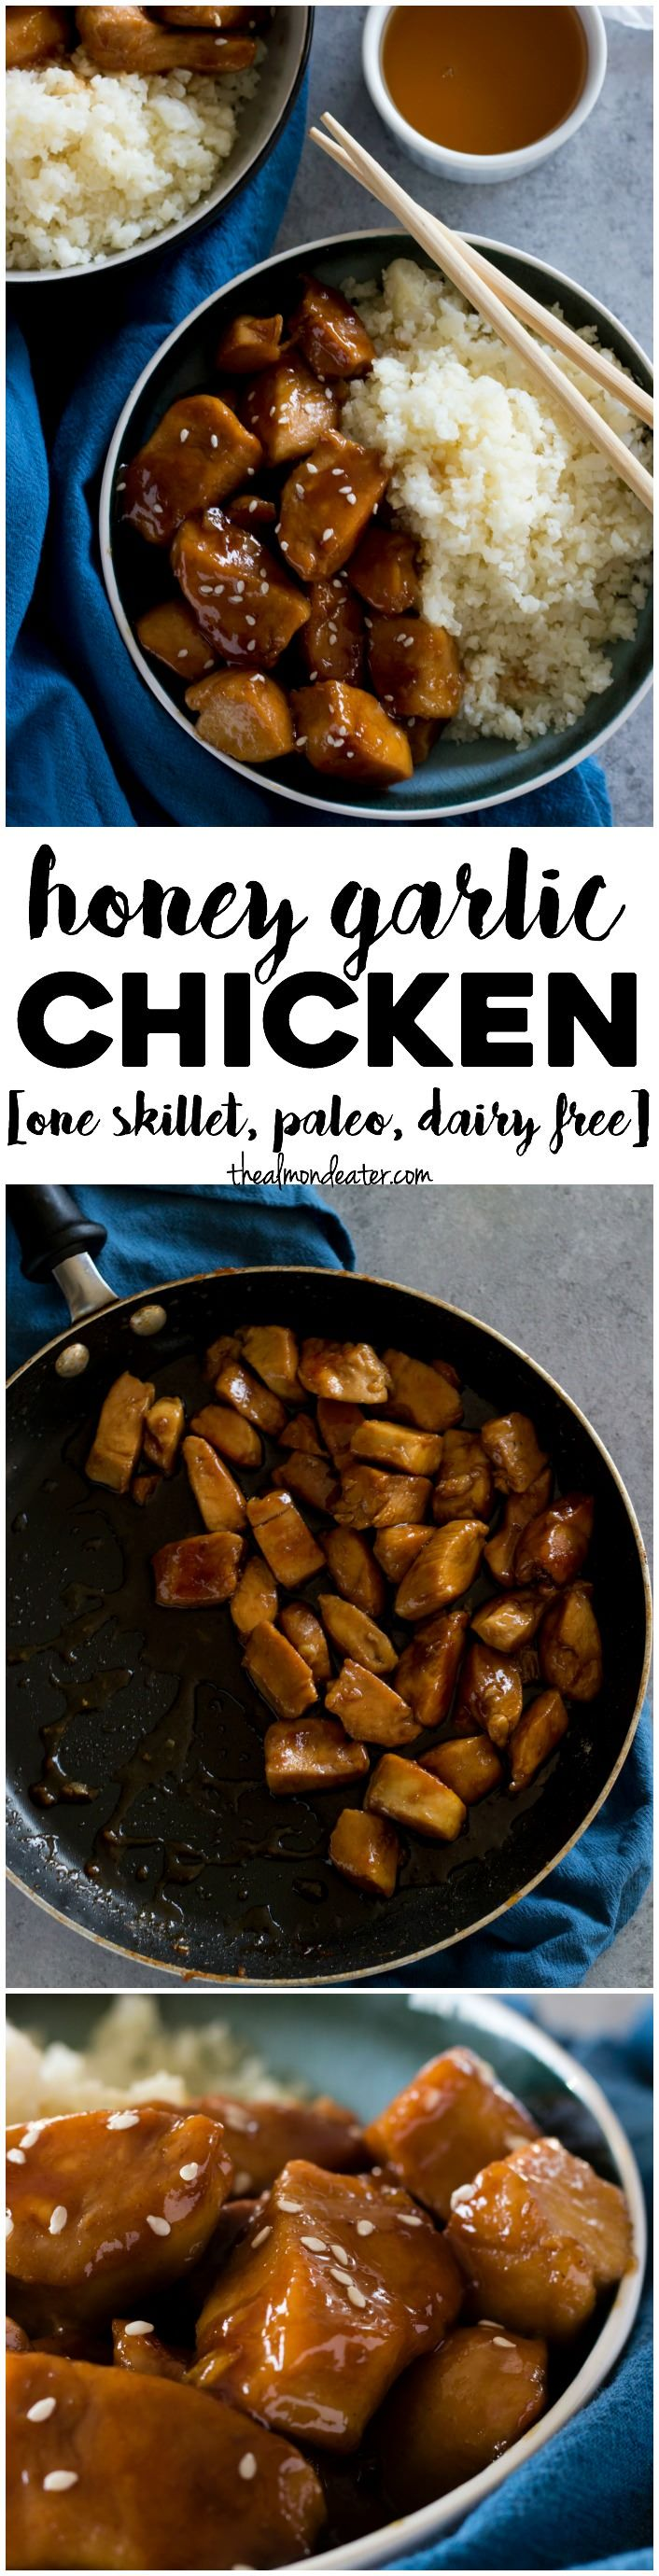 Honey Garlic Chicken   A one skillet meal that's ready in 30 minutes--perfect for weeknight meals!   thealmondeater.com